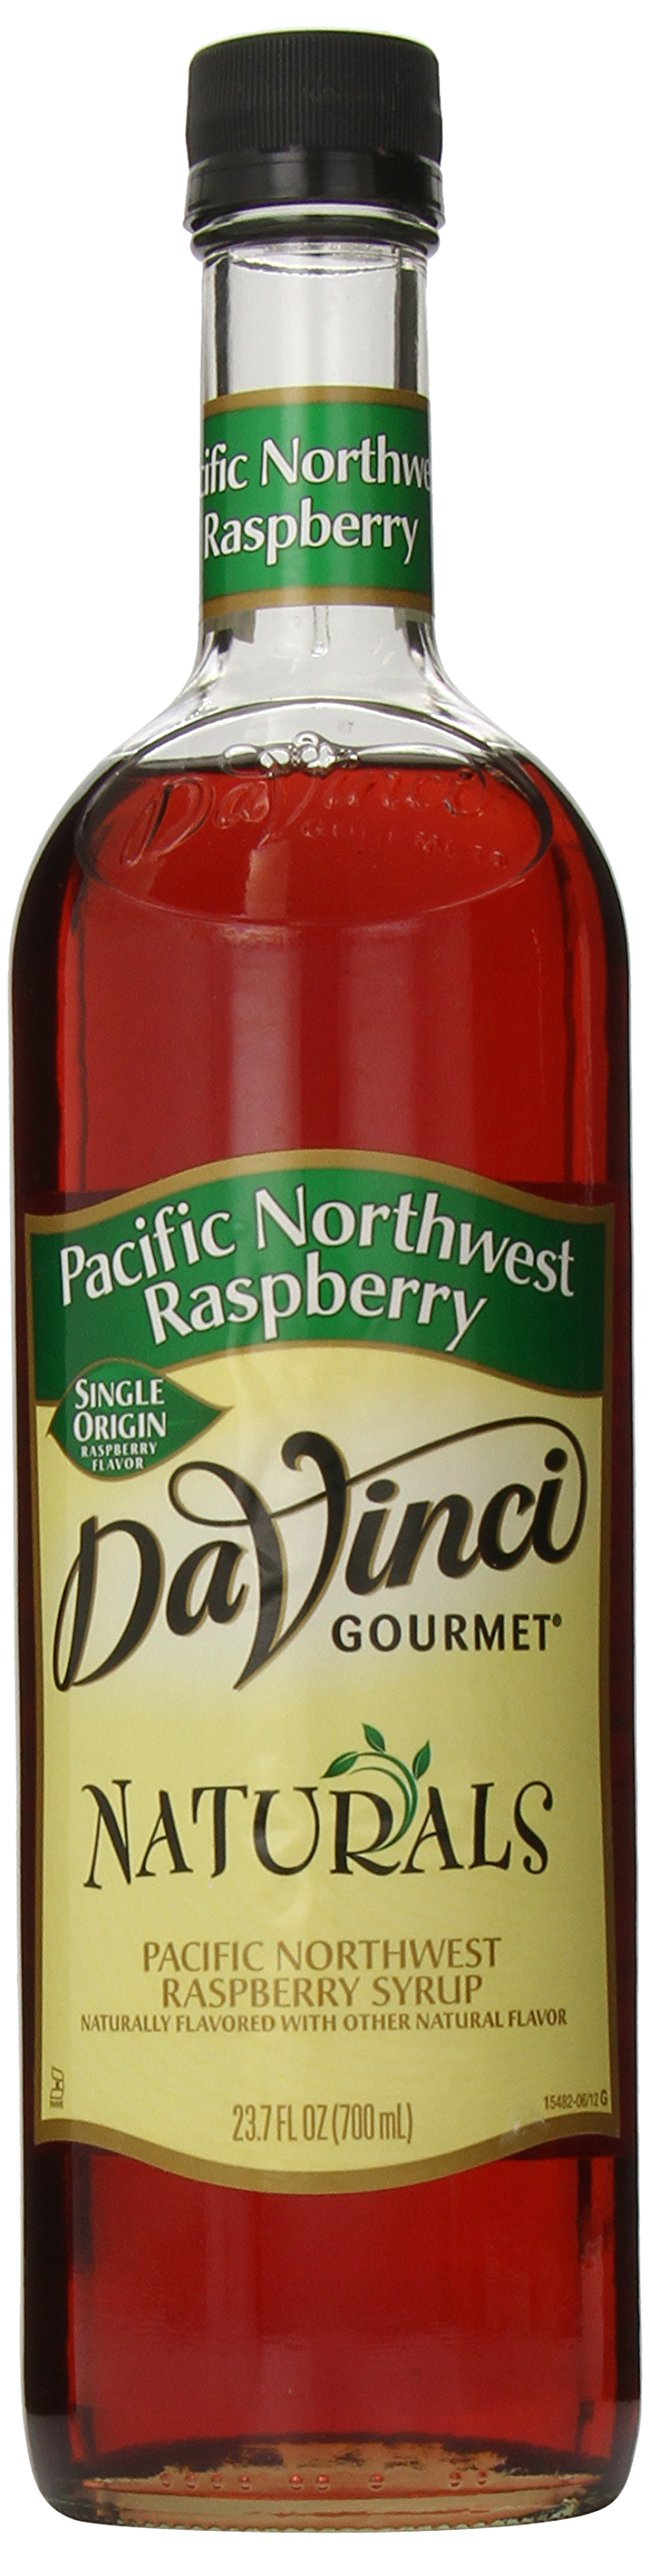 DaVinci Gourmet Naturals Syrup, Pacific Northwest Raspberry, 23.67 Ounce